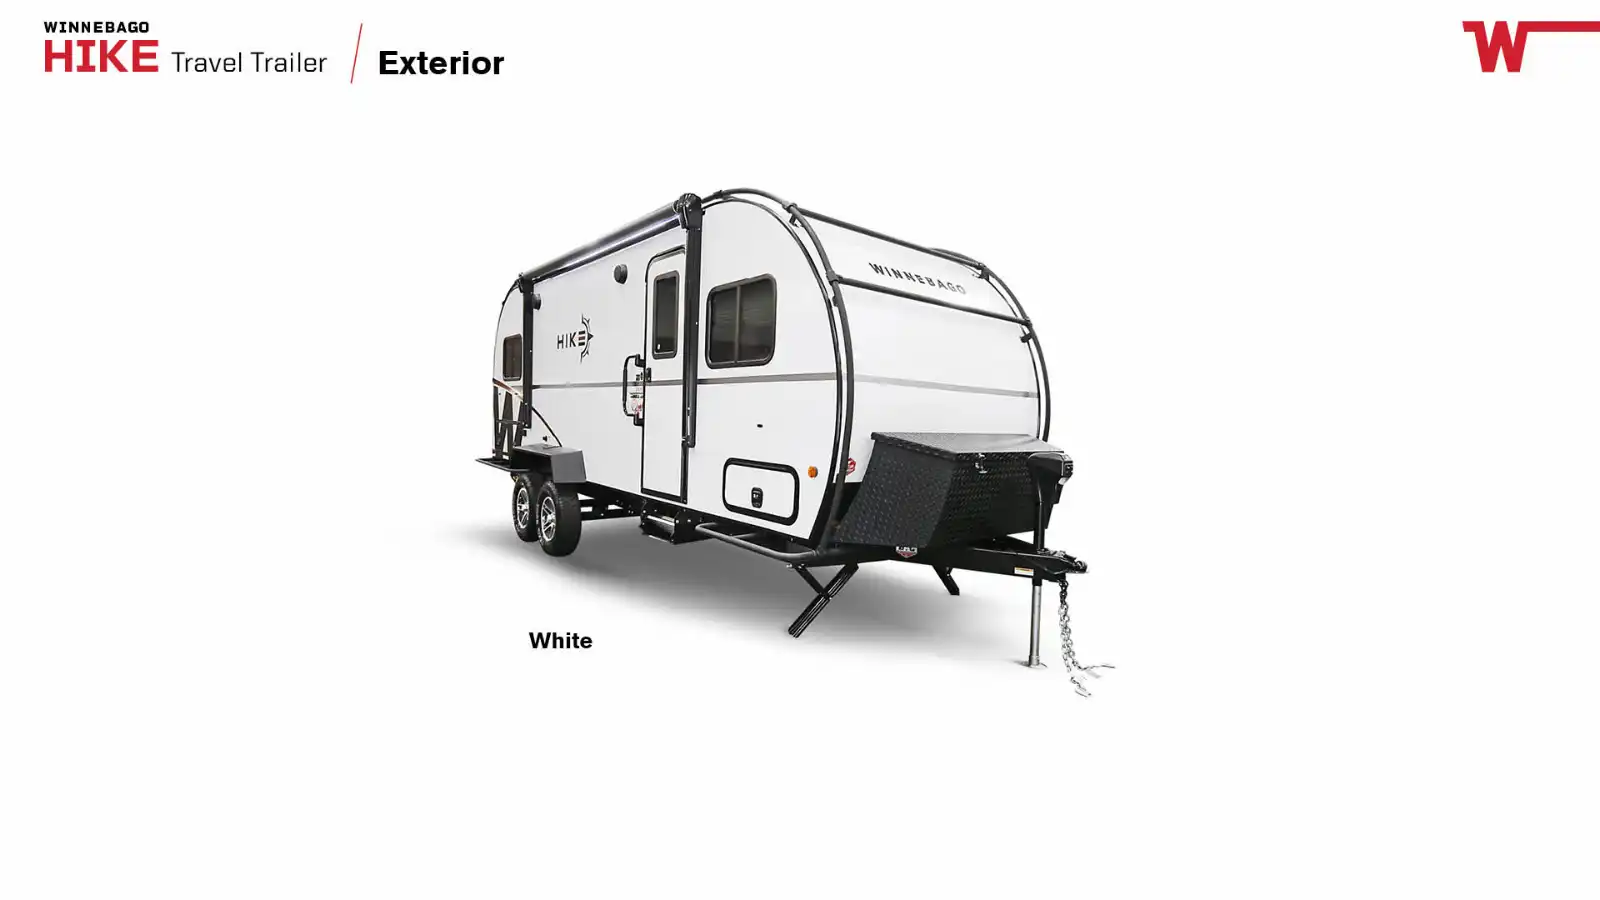 lightweight camper for active people and exploreres winnebago hike